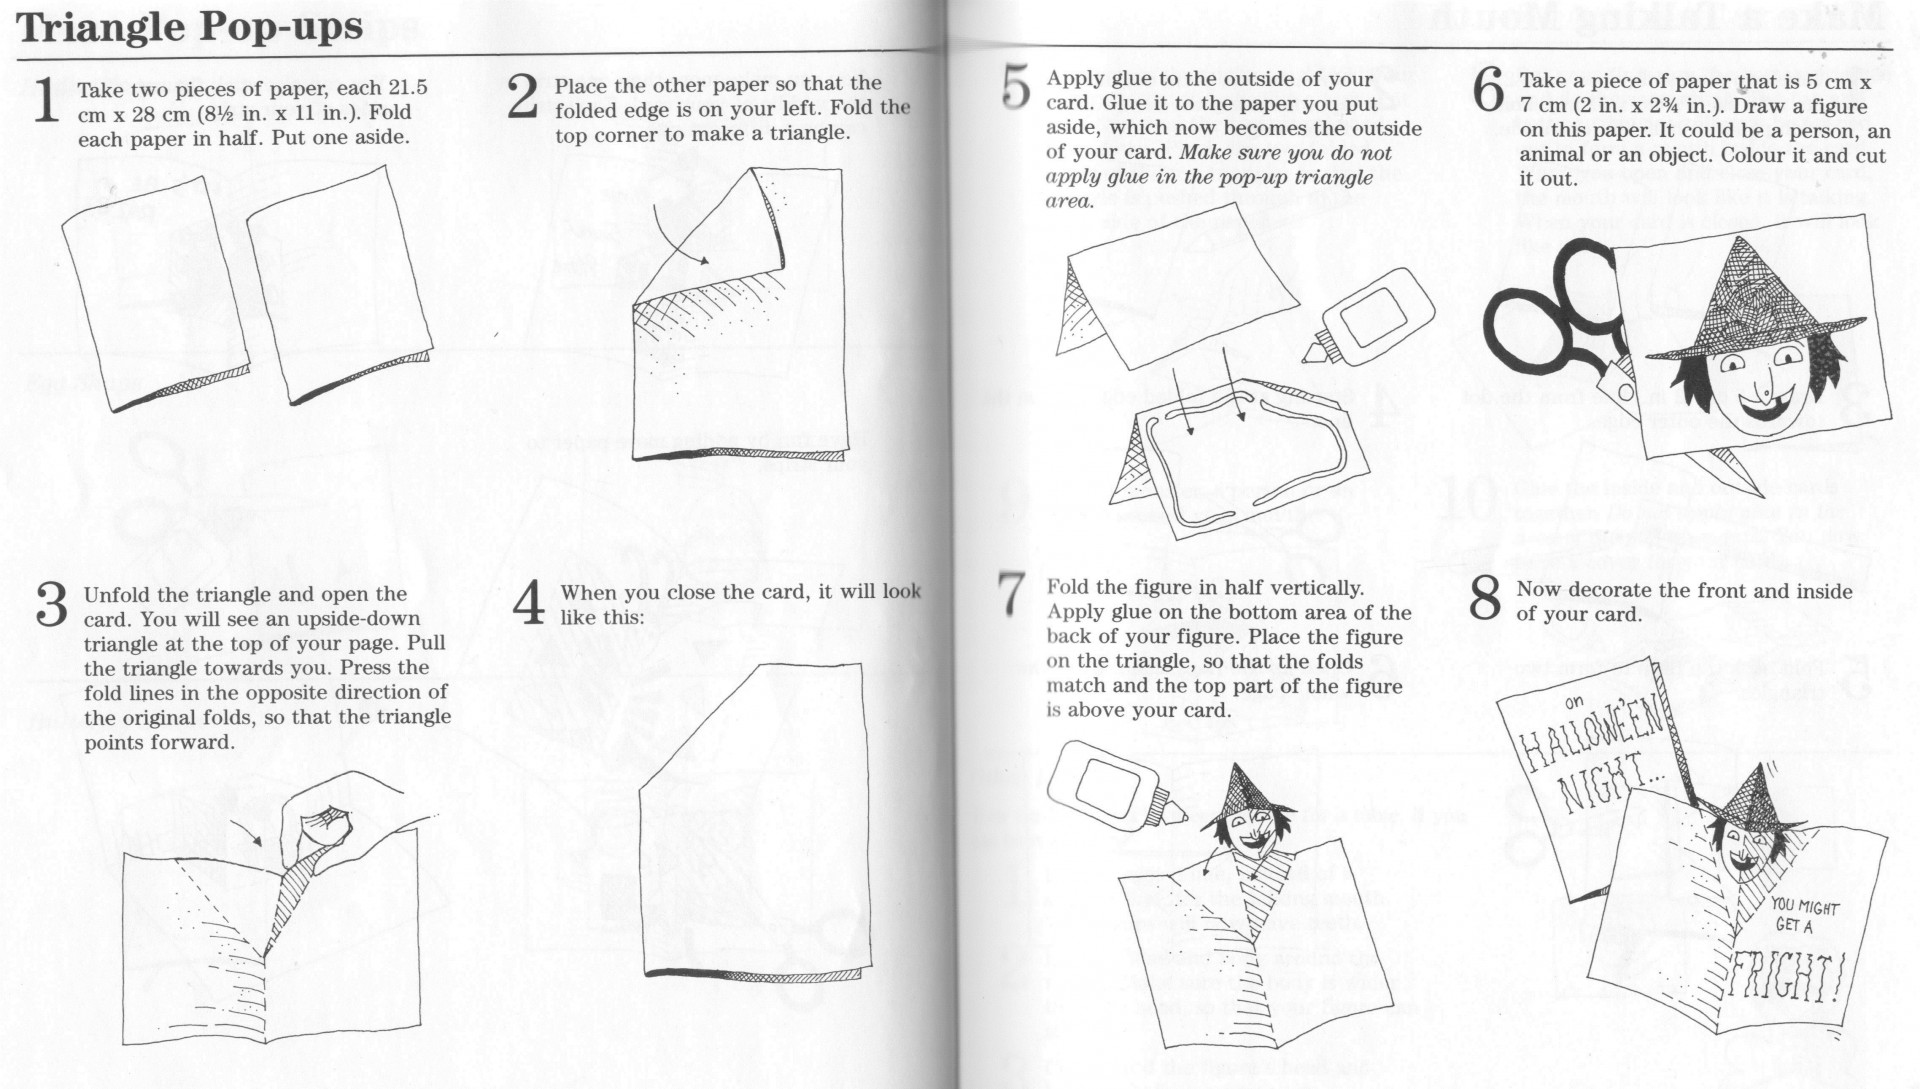 000 Rare Pop Up Book Template High Definition  Diy Birthday After Effect Free Download1920